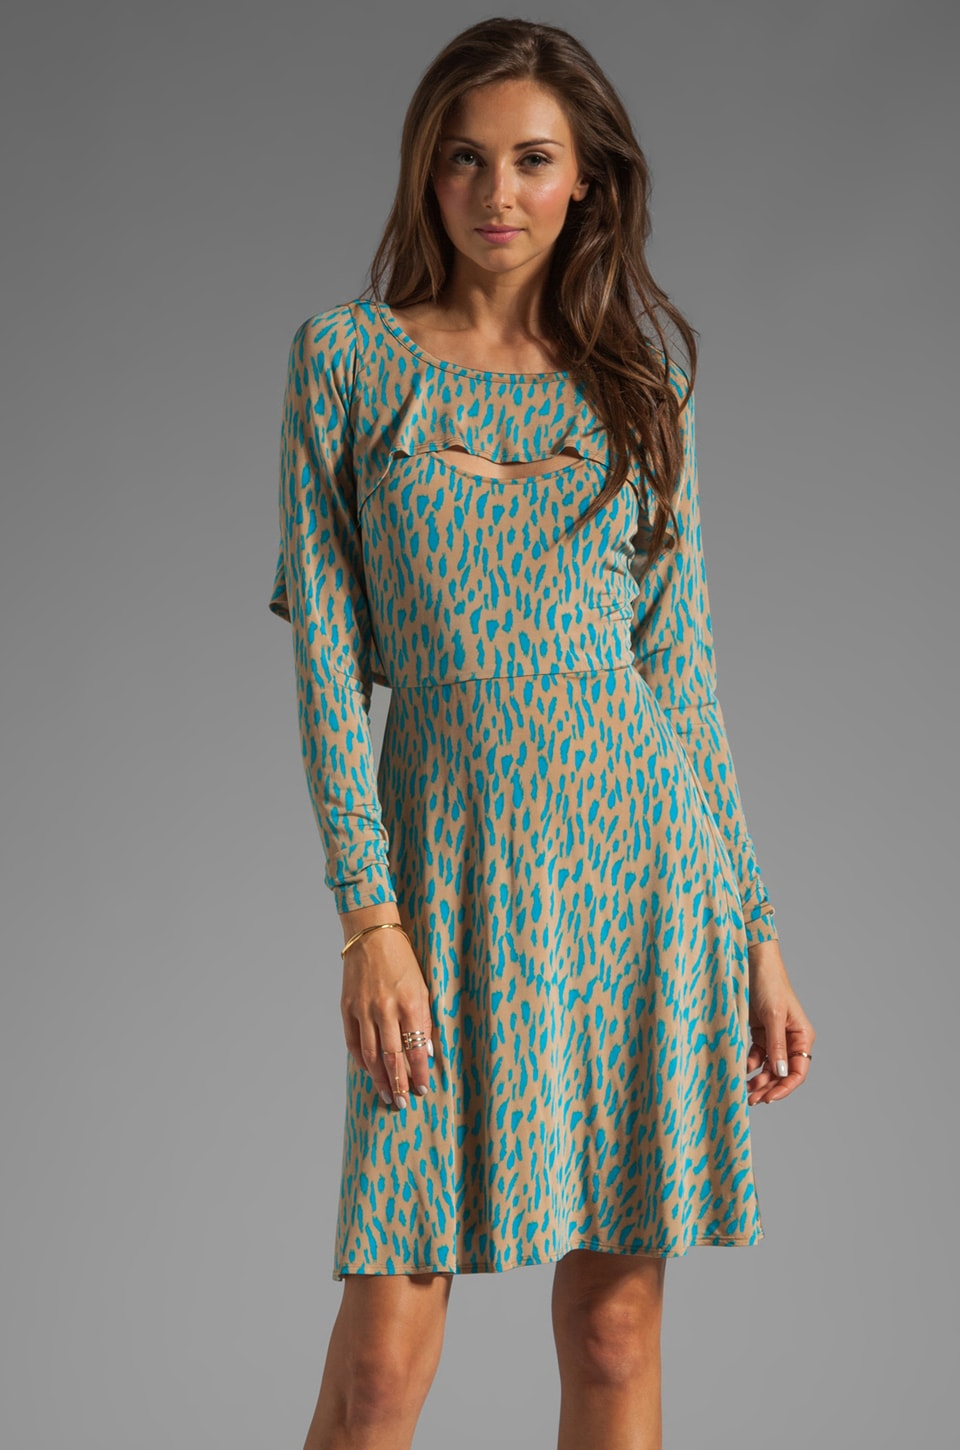 Tracy Reese Printed Jersey Bolero Dress in Latte/Vivid Blue